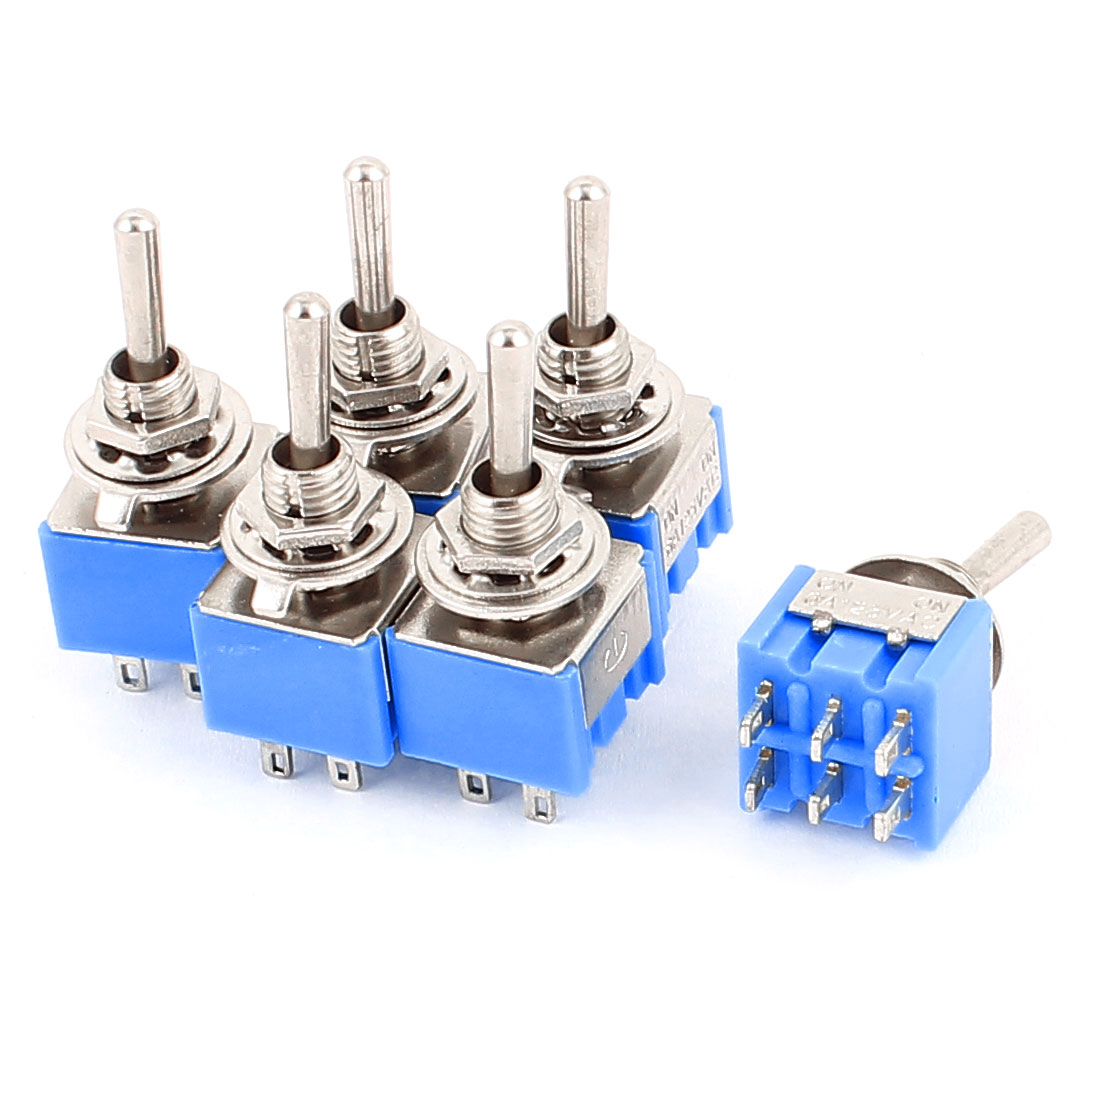 AC 125V 6A DPDT ON-ON 2 Positions 6-pin Latching Miniature Toggle Switch 6 Pcs